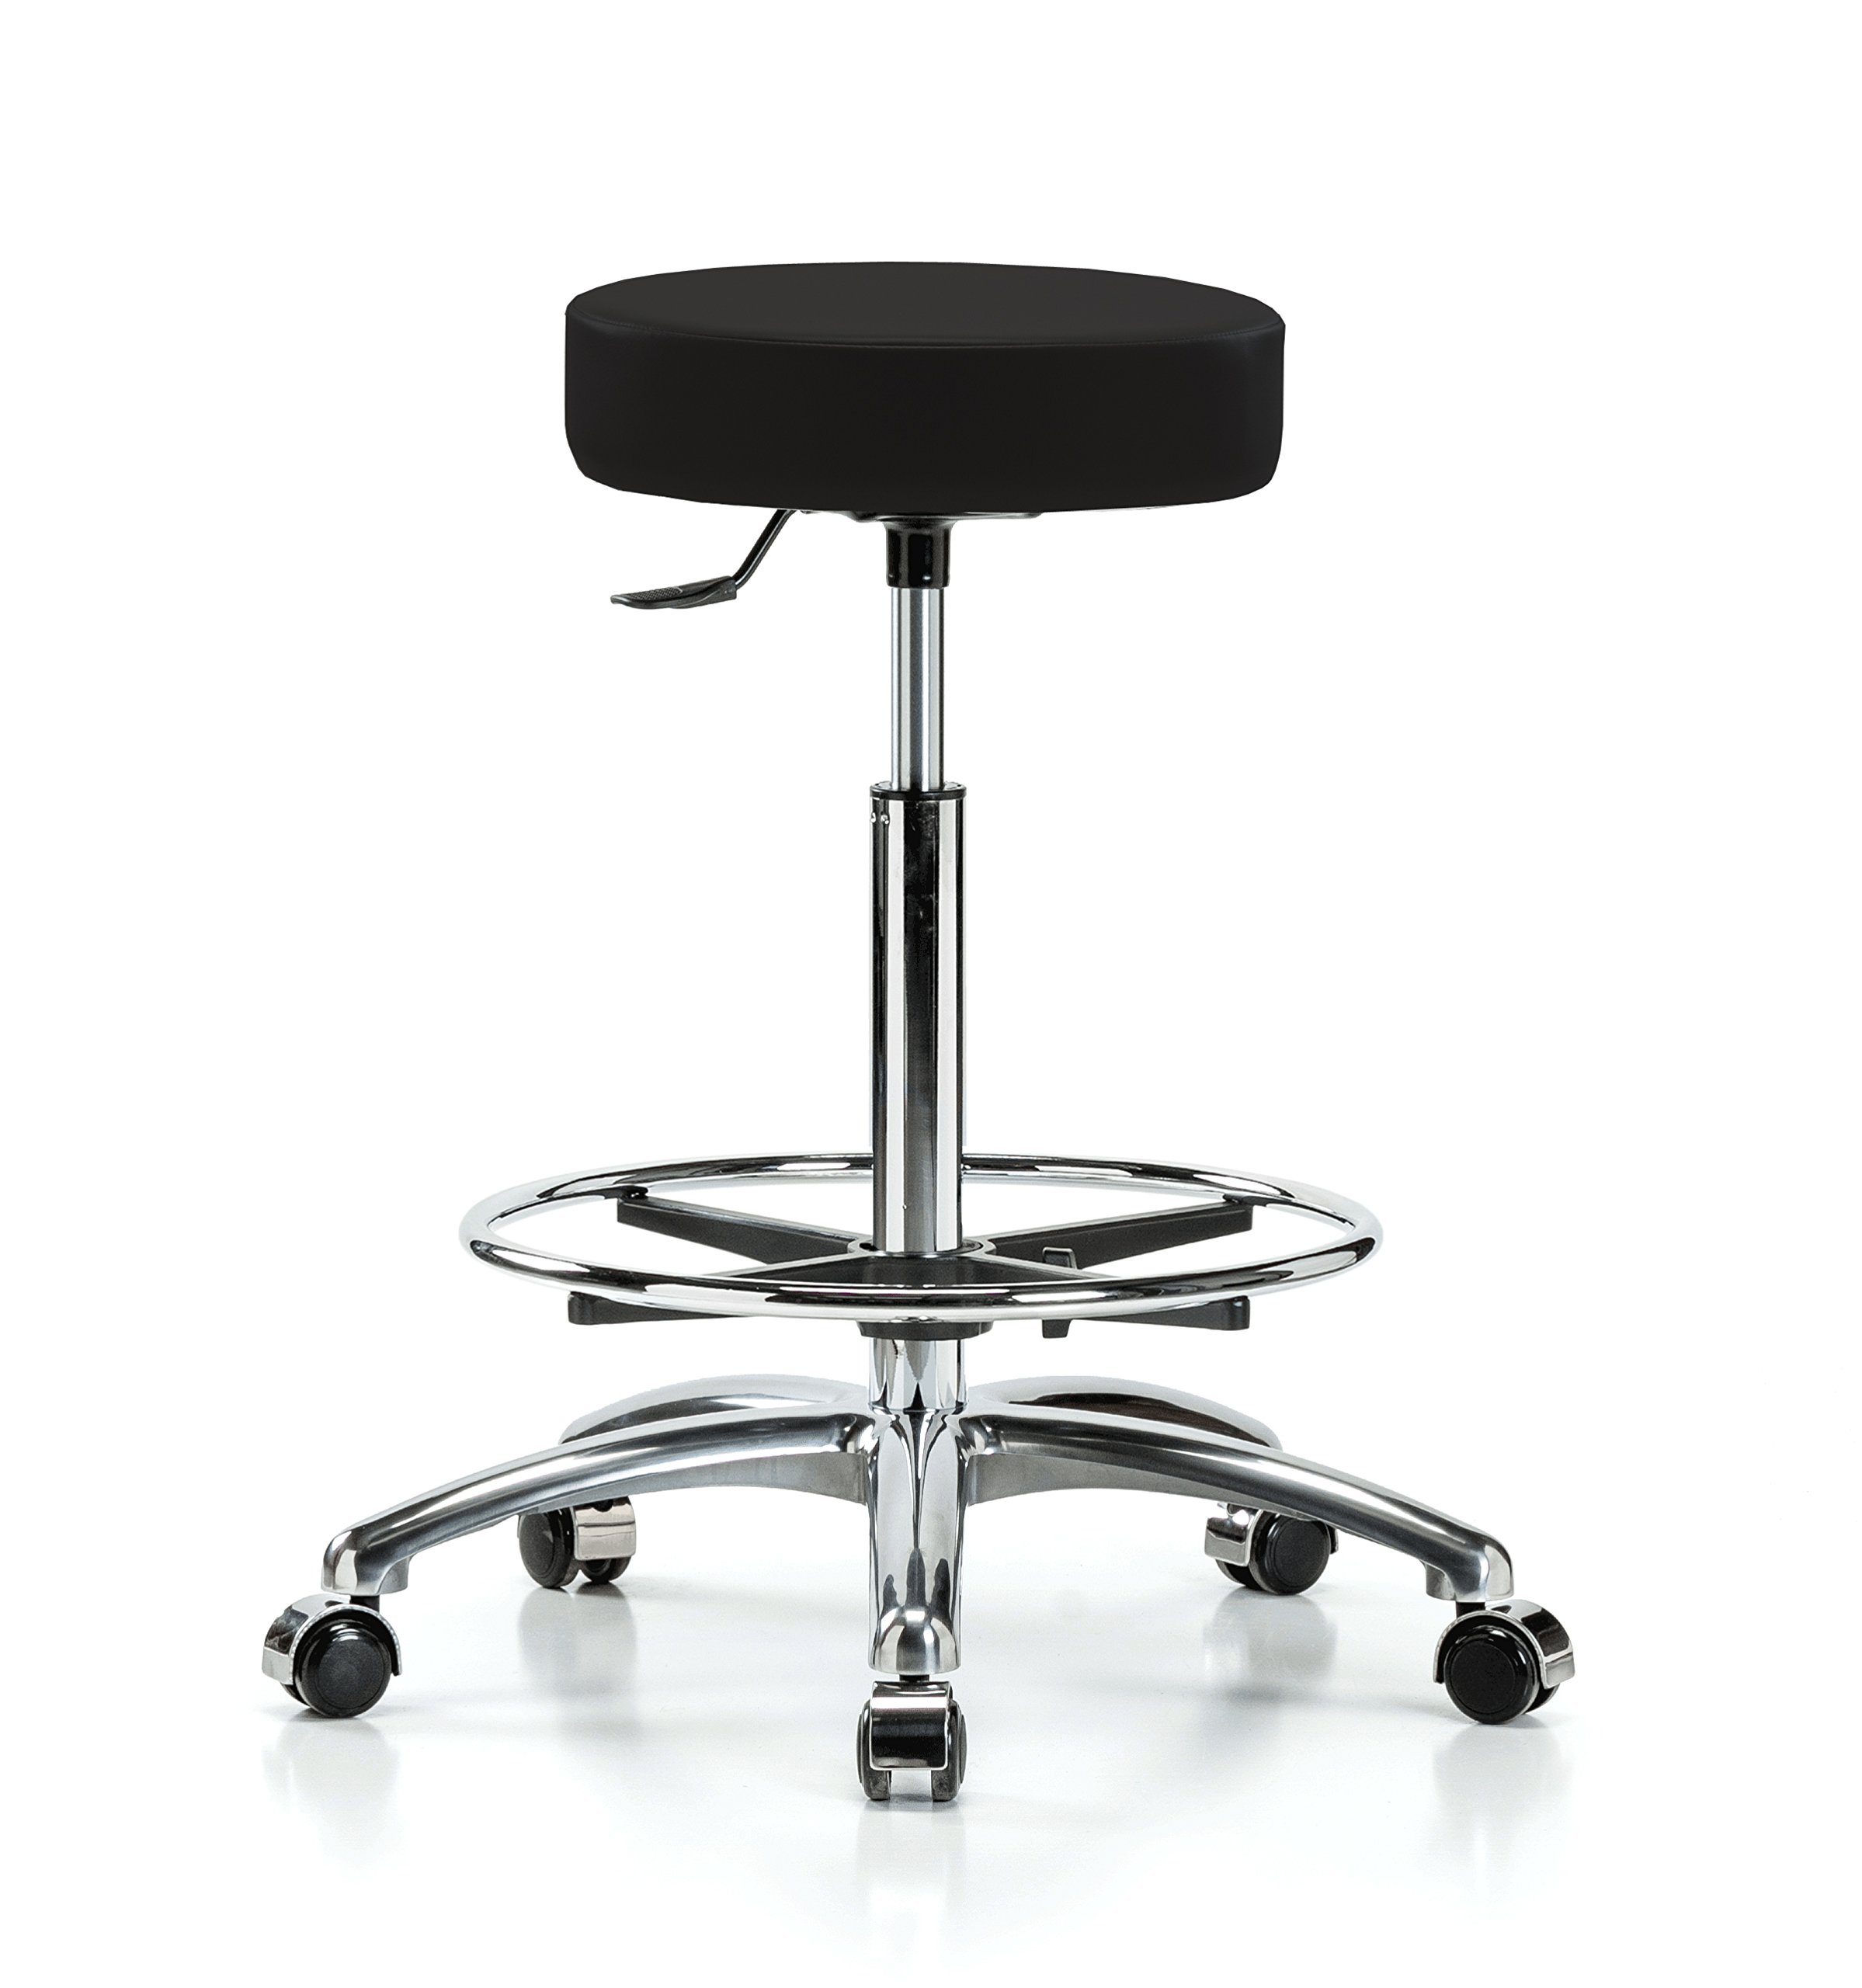 Perch Single Lever Adjustable Rolling Backless Swivel Stool in Chrome with Footring for Office Salon Home Garage or Work Shop 24'' - 34'' (Hard Floor Casters/Black Vinyl)